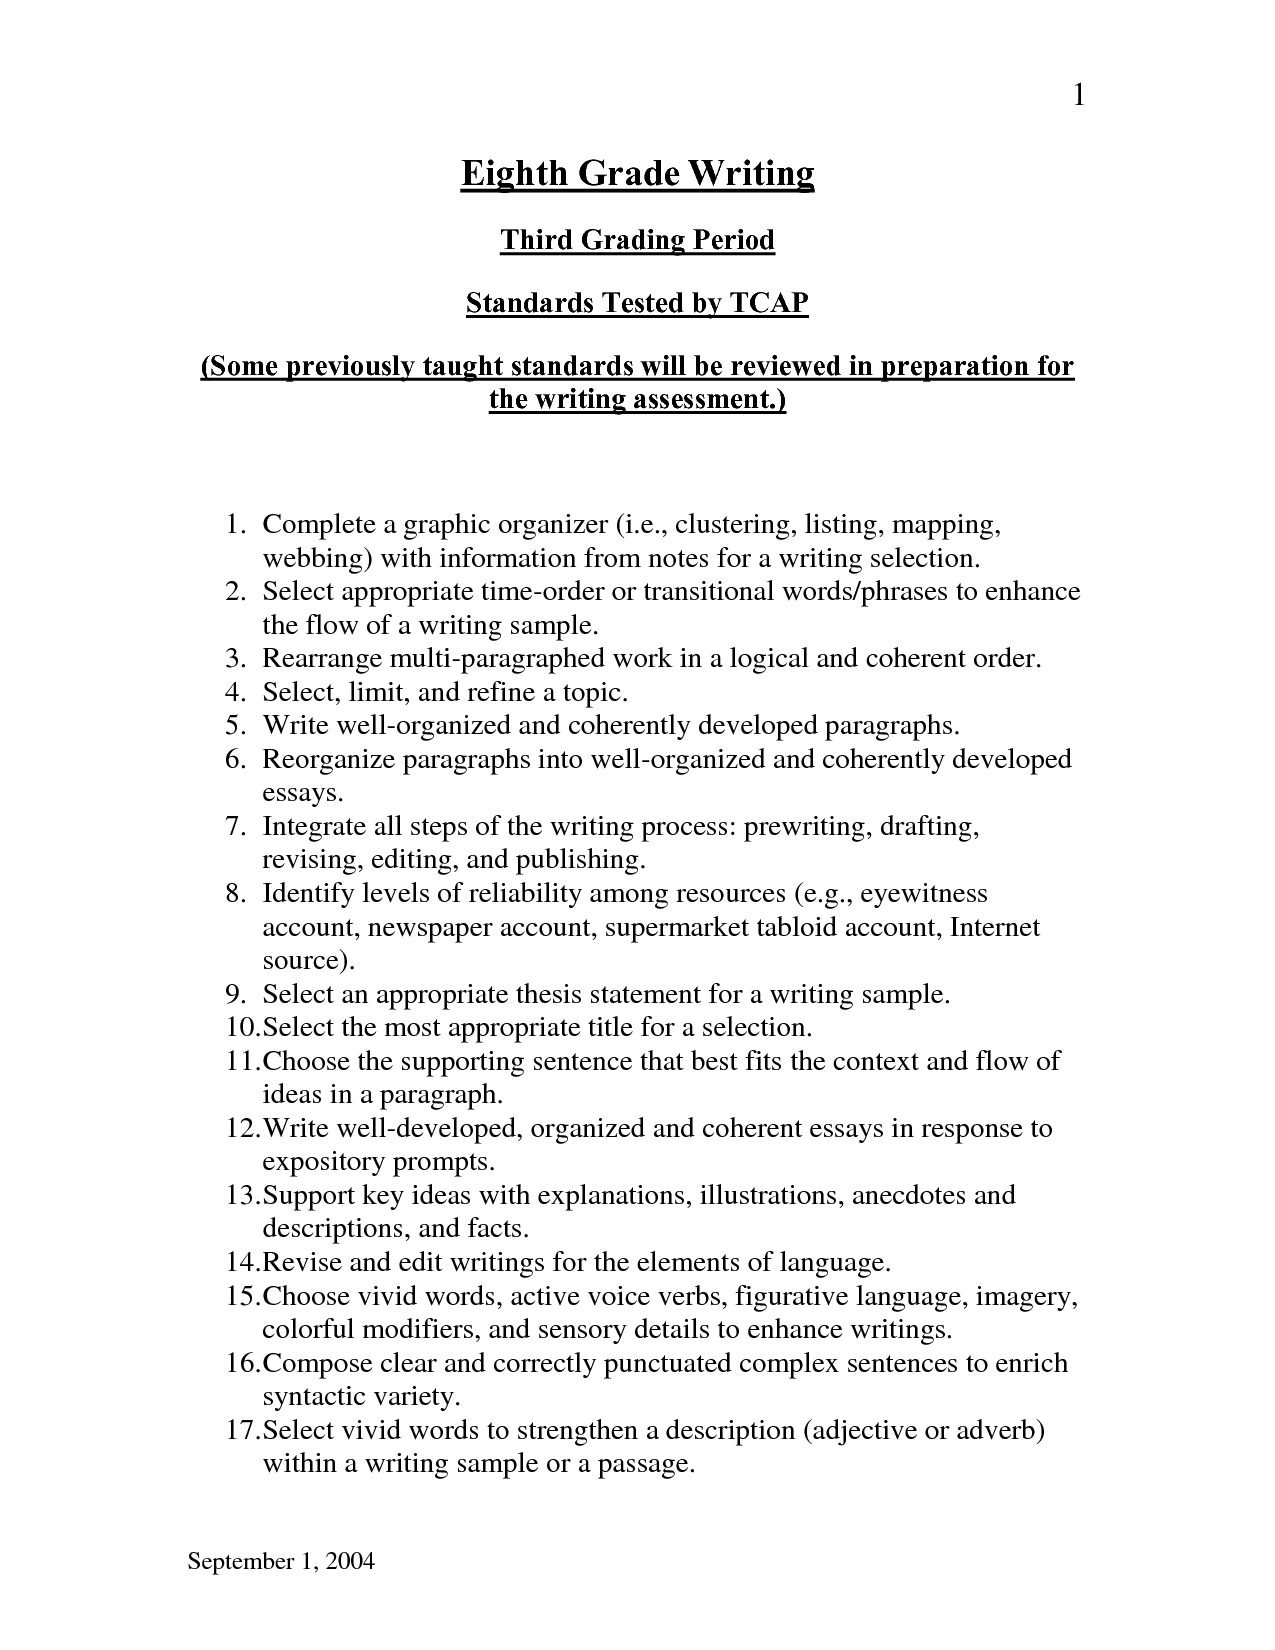 008 Expository Essays 1341145155 Essay Help Stunning 4th Grade Examples Assignment Pdf Full